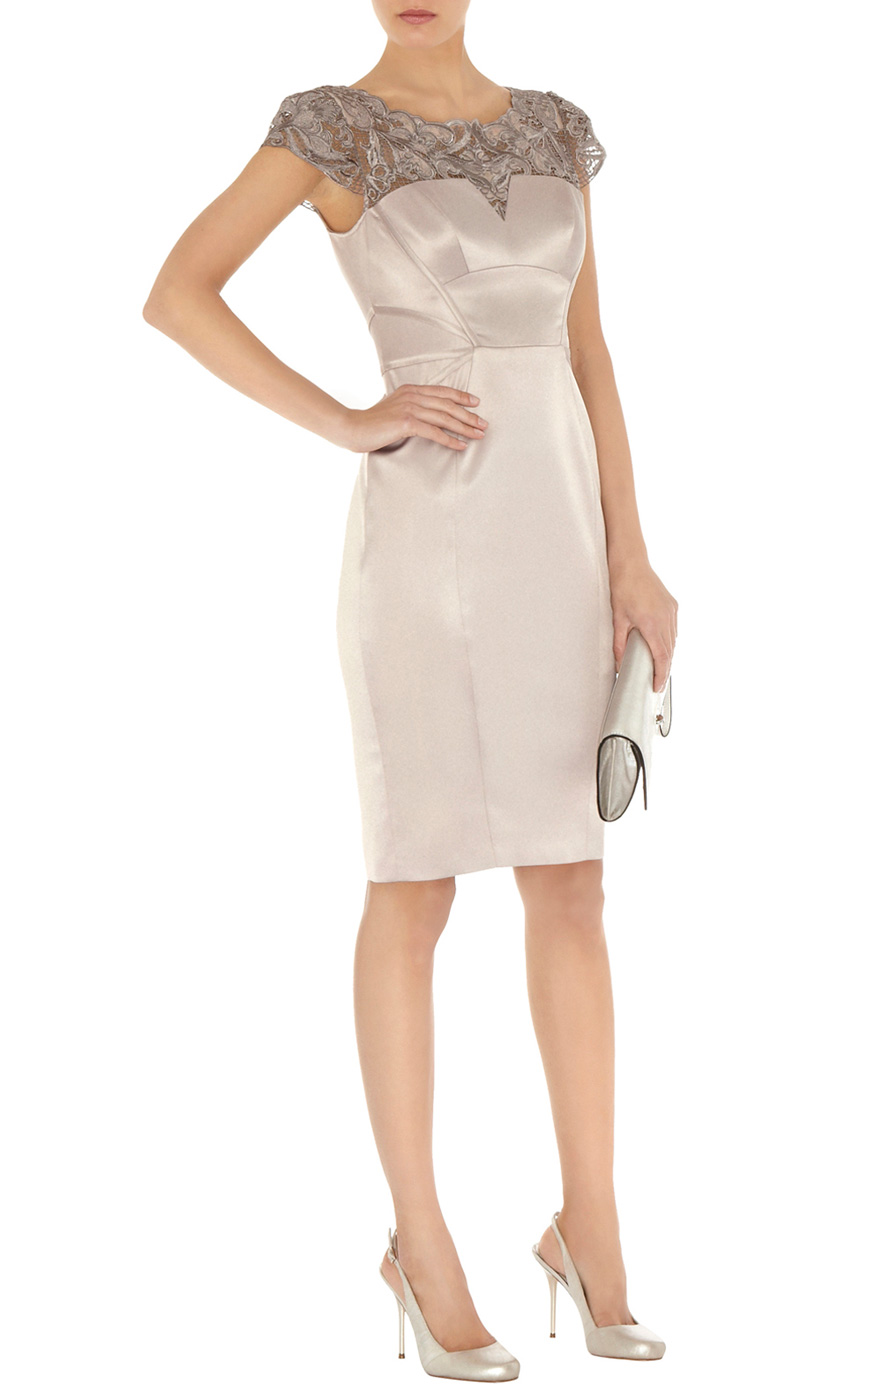 Karen Millen Lace Embroidery Dress in Natural - Lyst